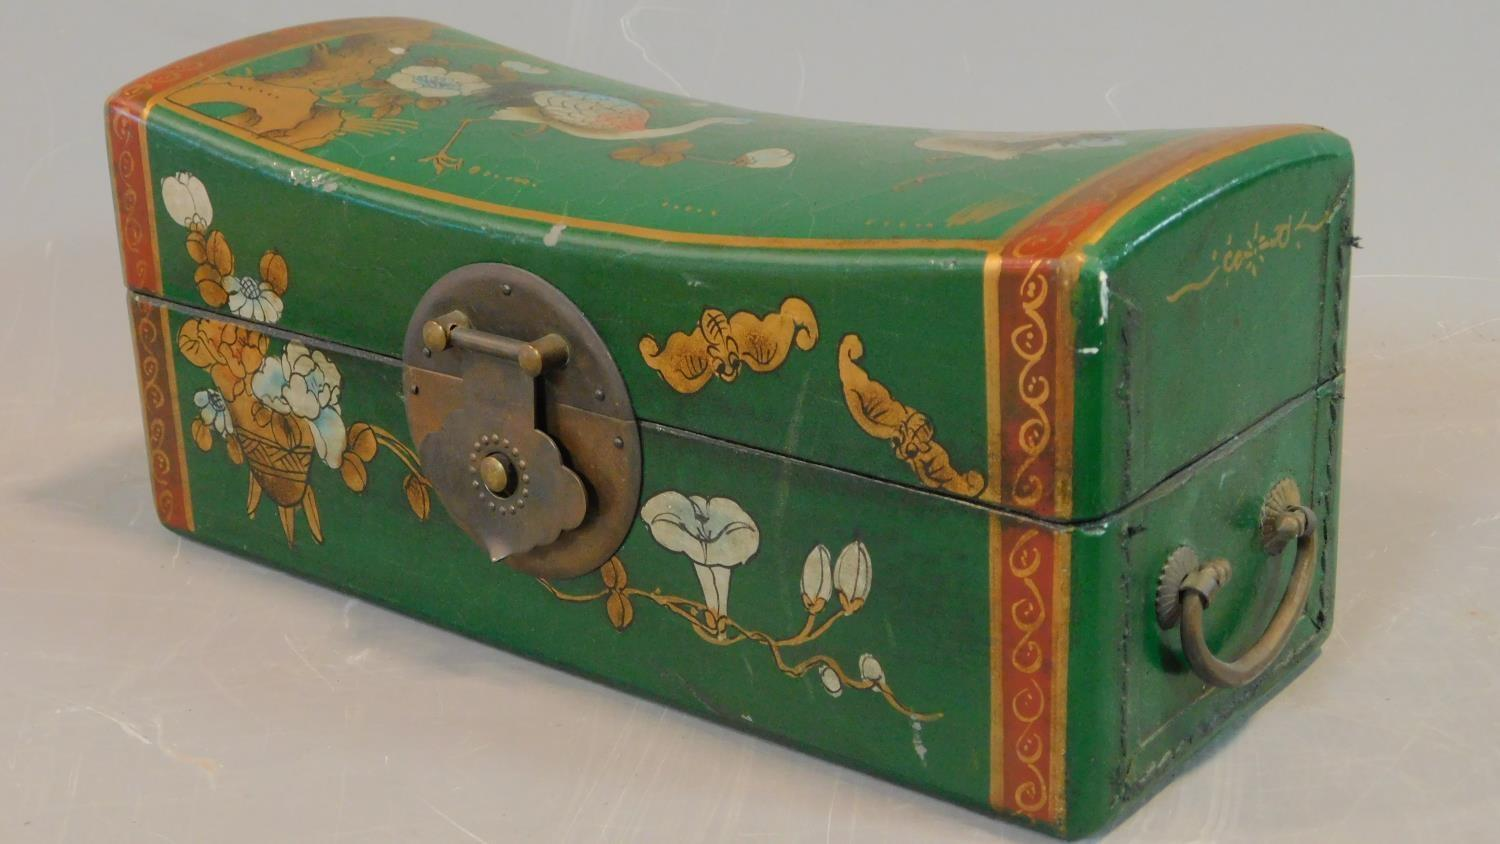 A green painted and lacquered Chinese box with floral motifs. H.12 W.28 D.11.5cm - Image 2 of 9